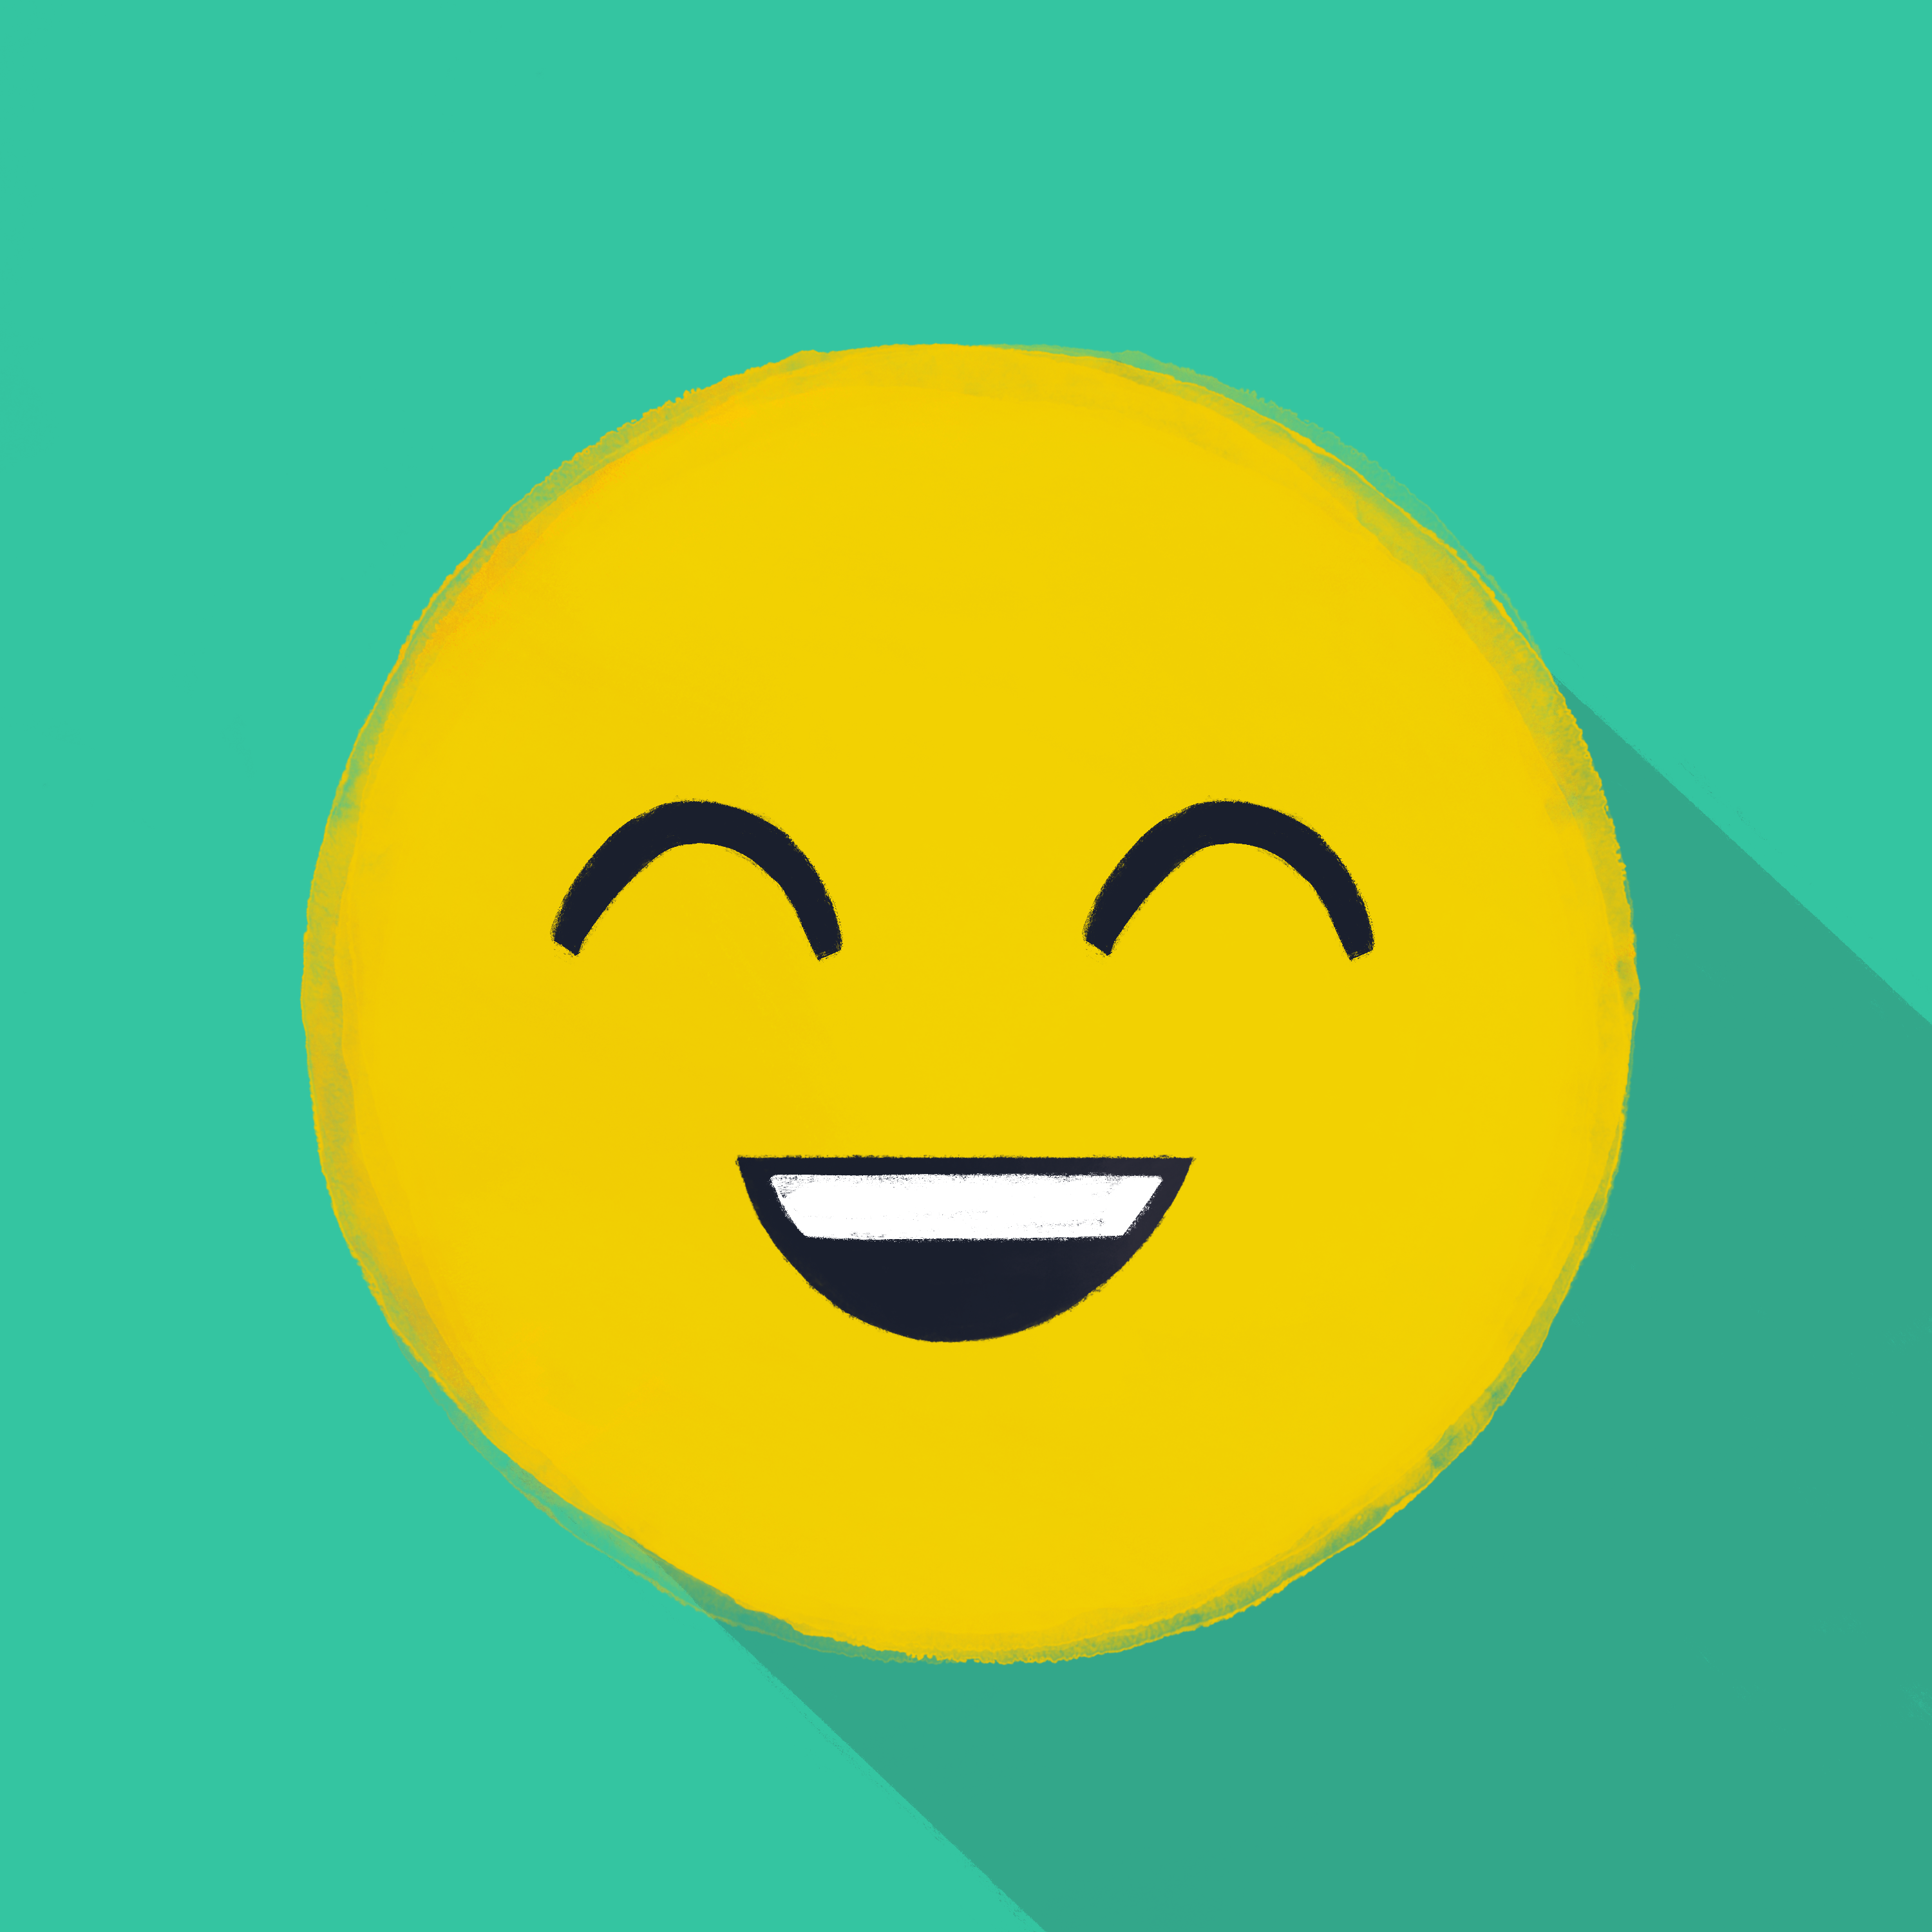 3-Emoji-Reimagined-Grinning_Face_With_Smiling_Eyes-Kiwani-Dolean